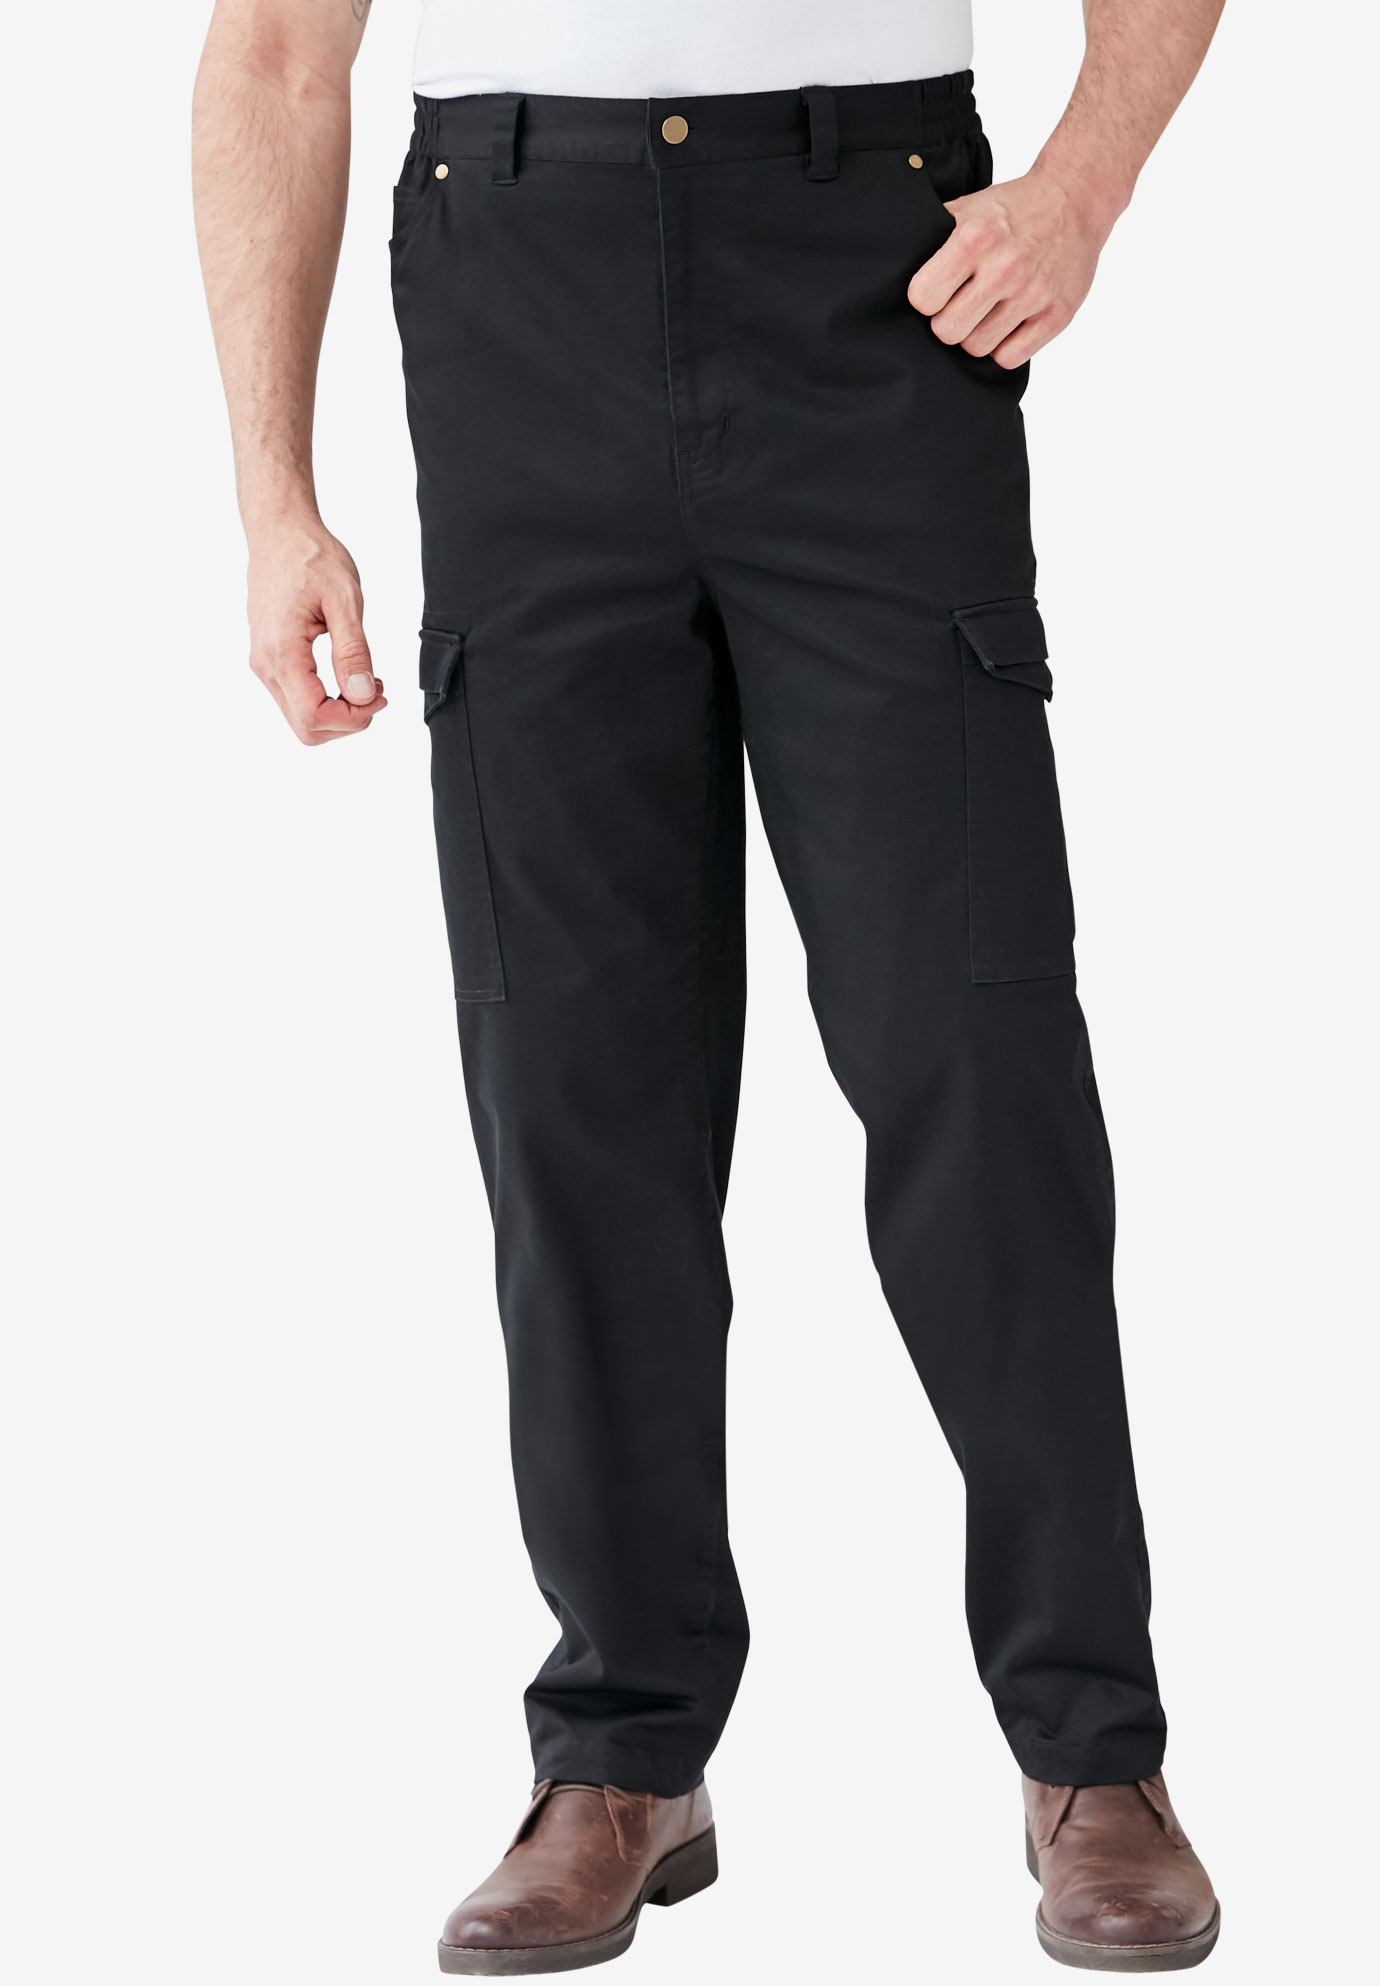 Flex Knit Cargo Pants with Side-Elastic Waist,